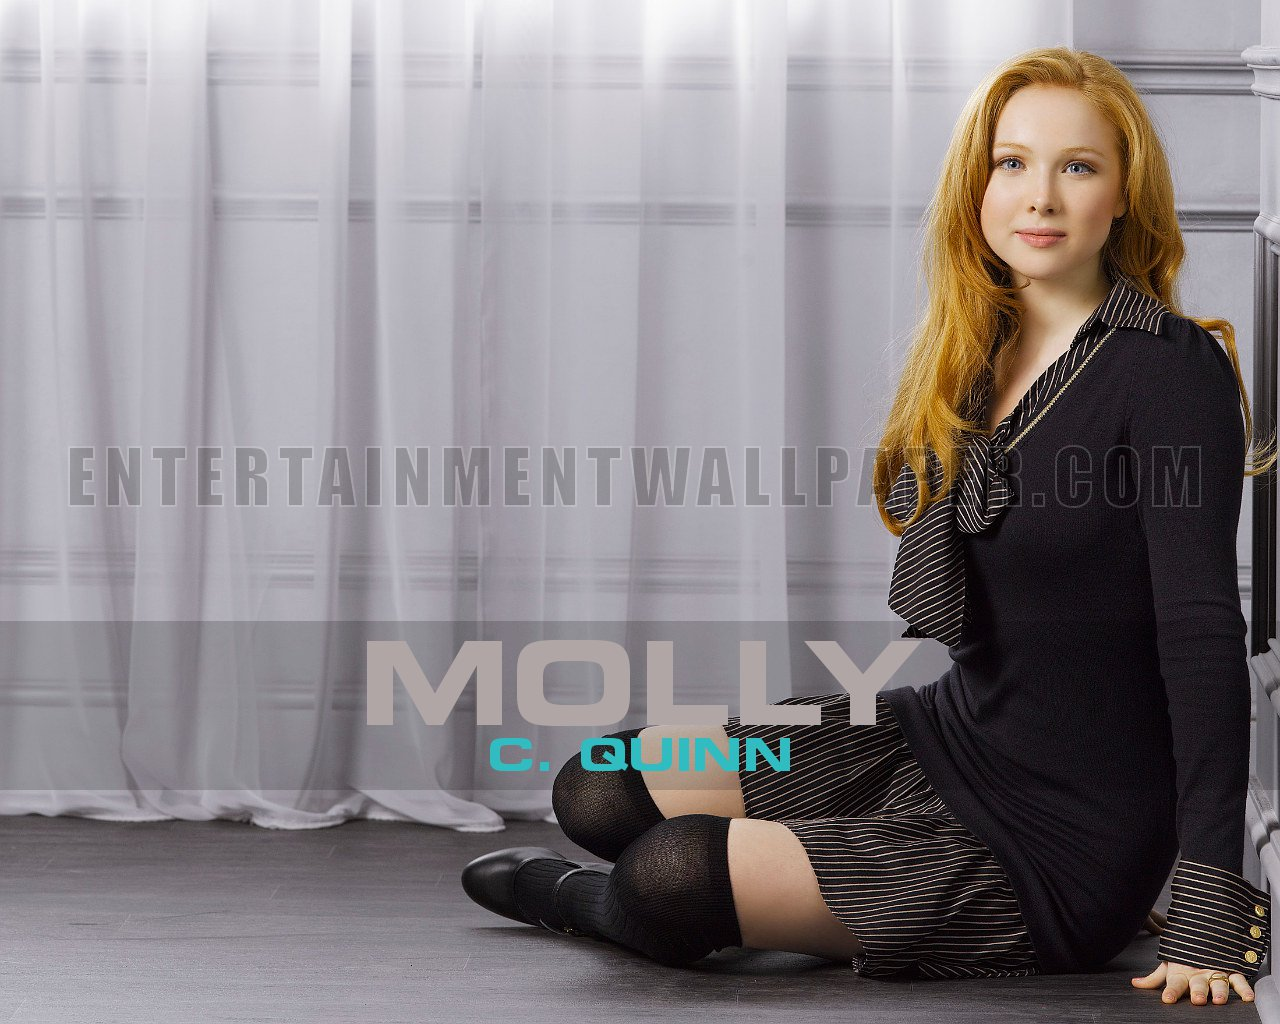 Molly C. Quinn Wallpaper - Original size, download now.